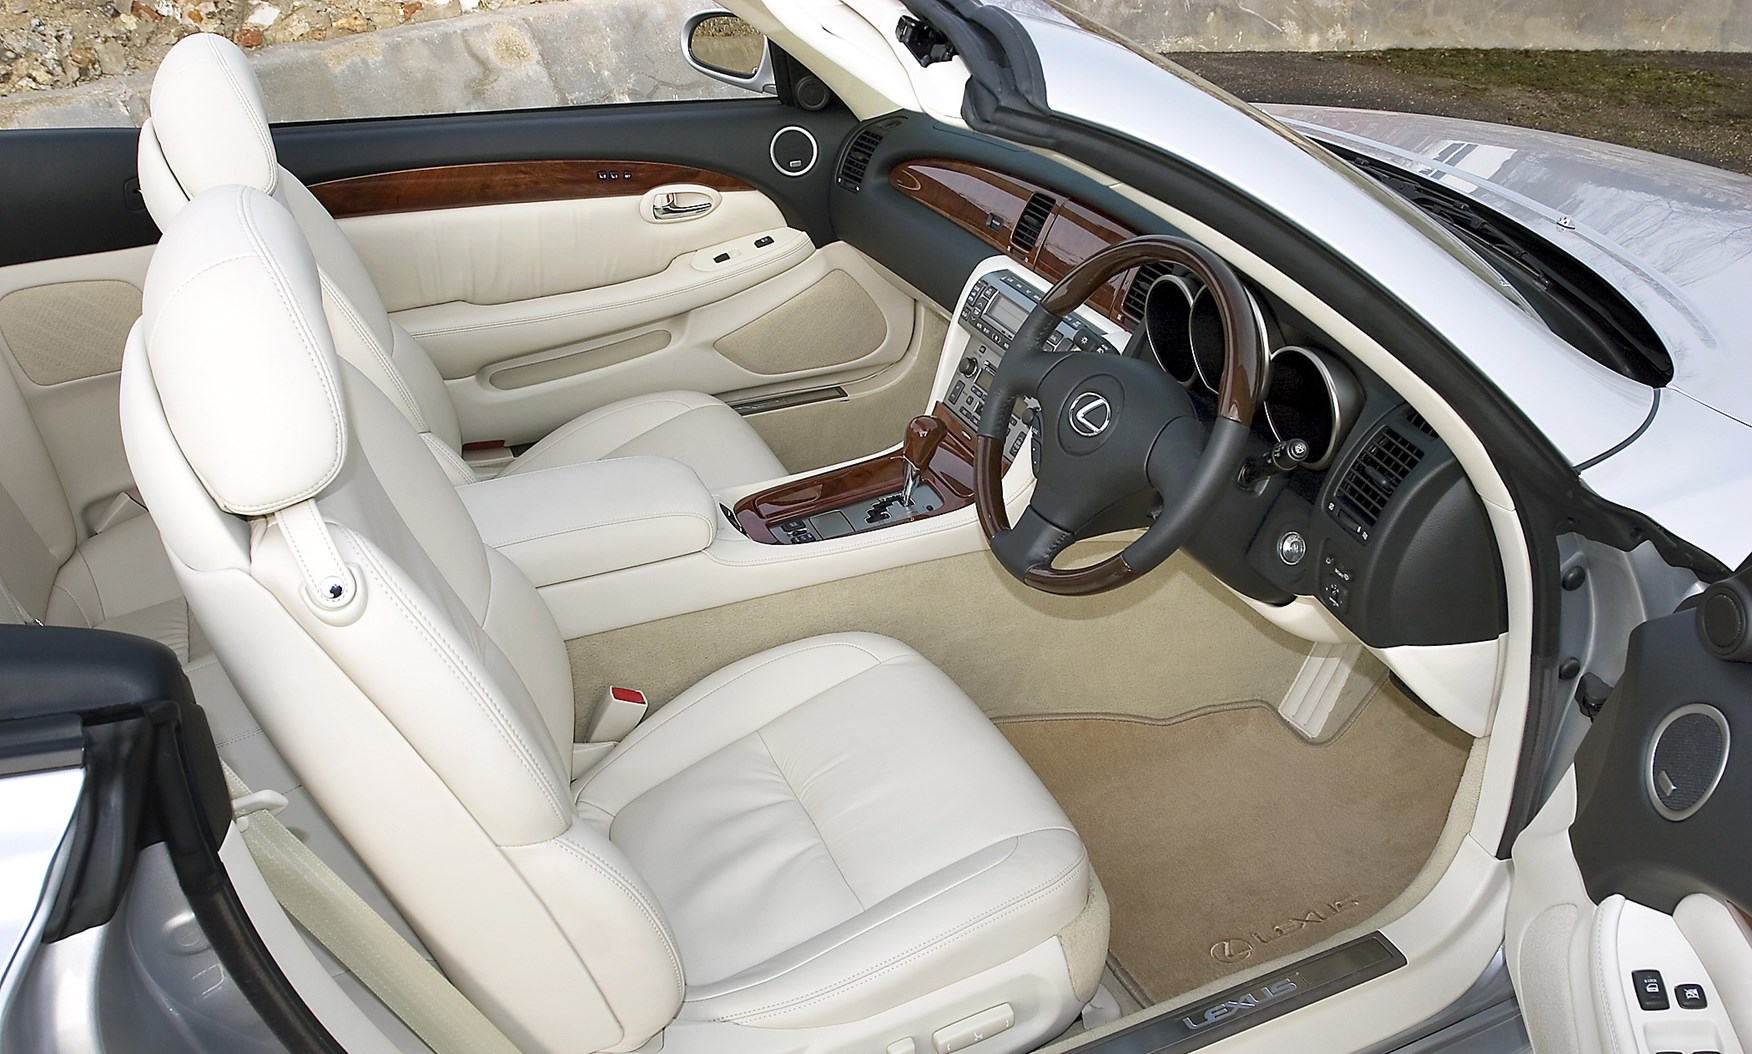 View all images of the lexus sc 01 09